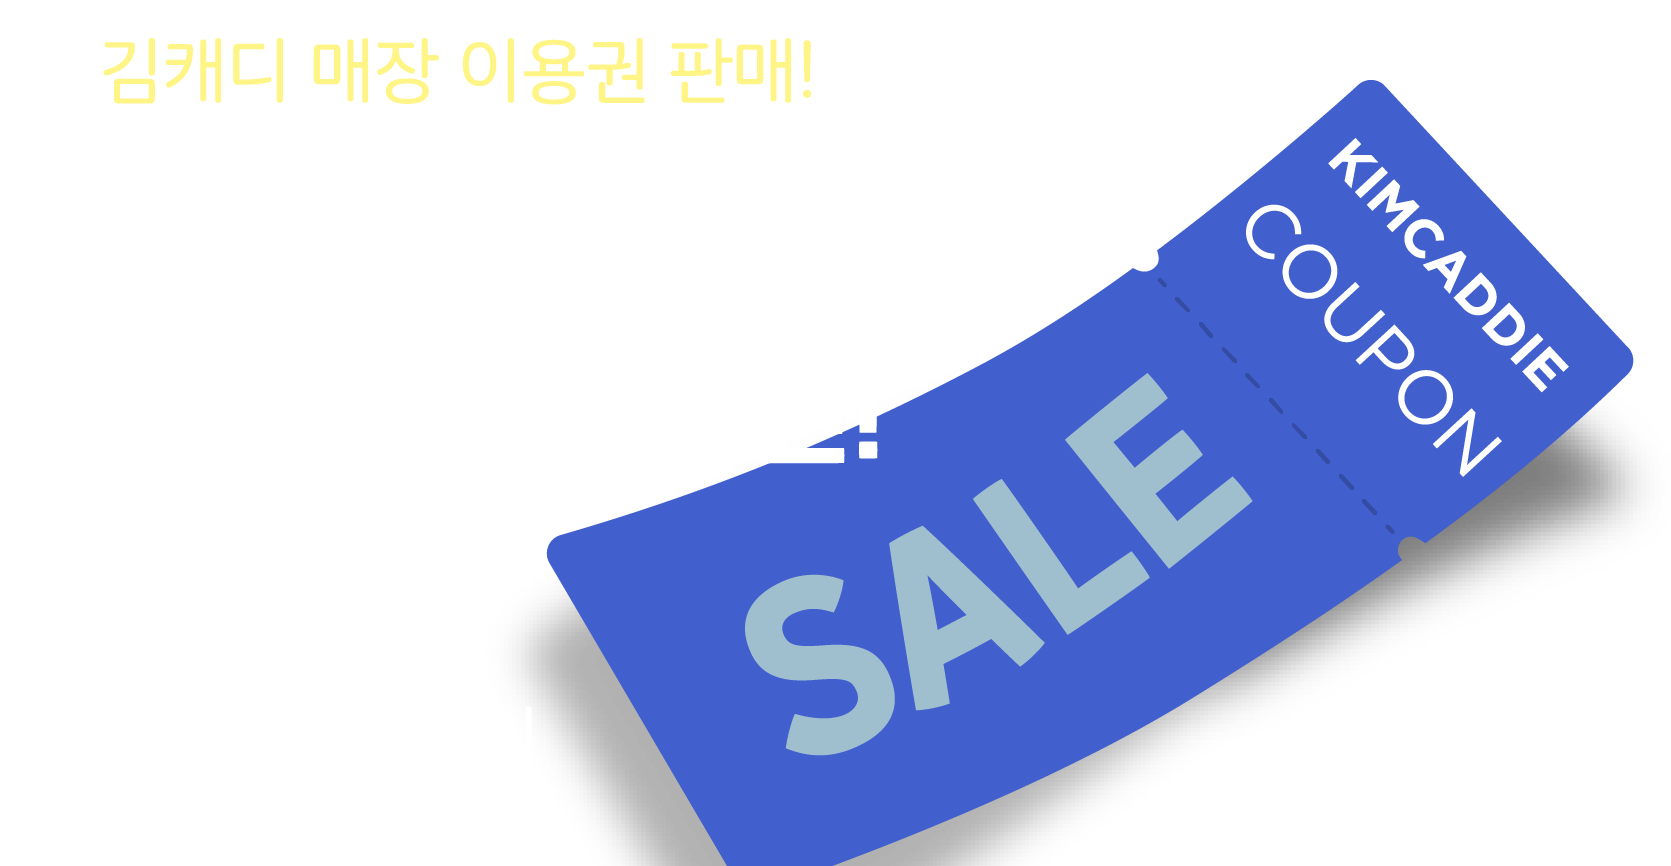 couponbanner2